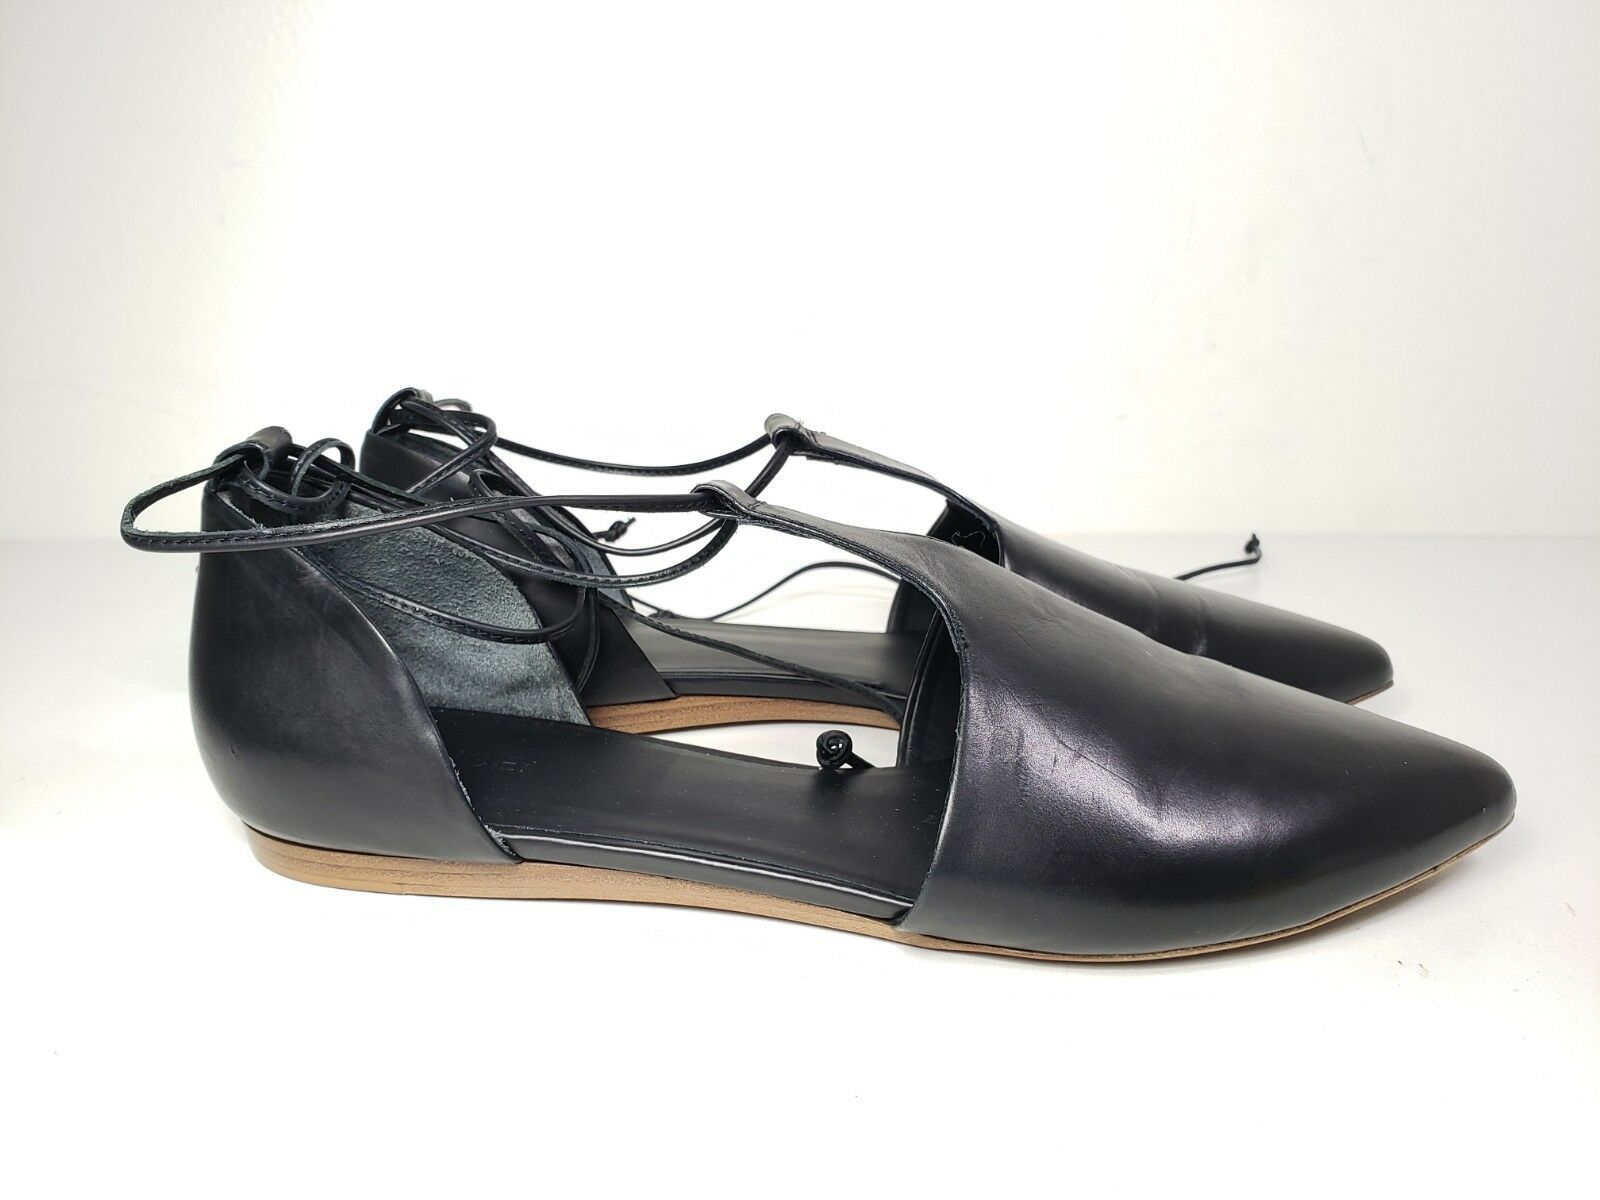 325 size 8.5 Vince Vince Vince Noella D'Orsay Black Leather Ballet Flats Womens shoes ITALY 526738